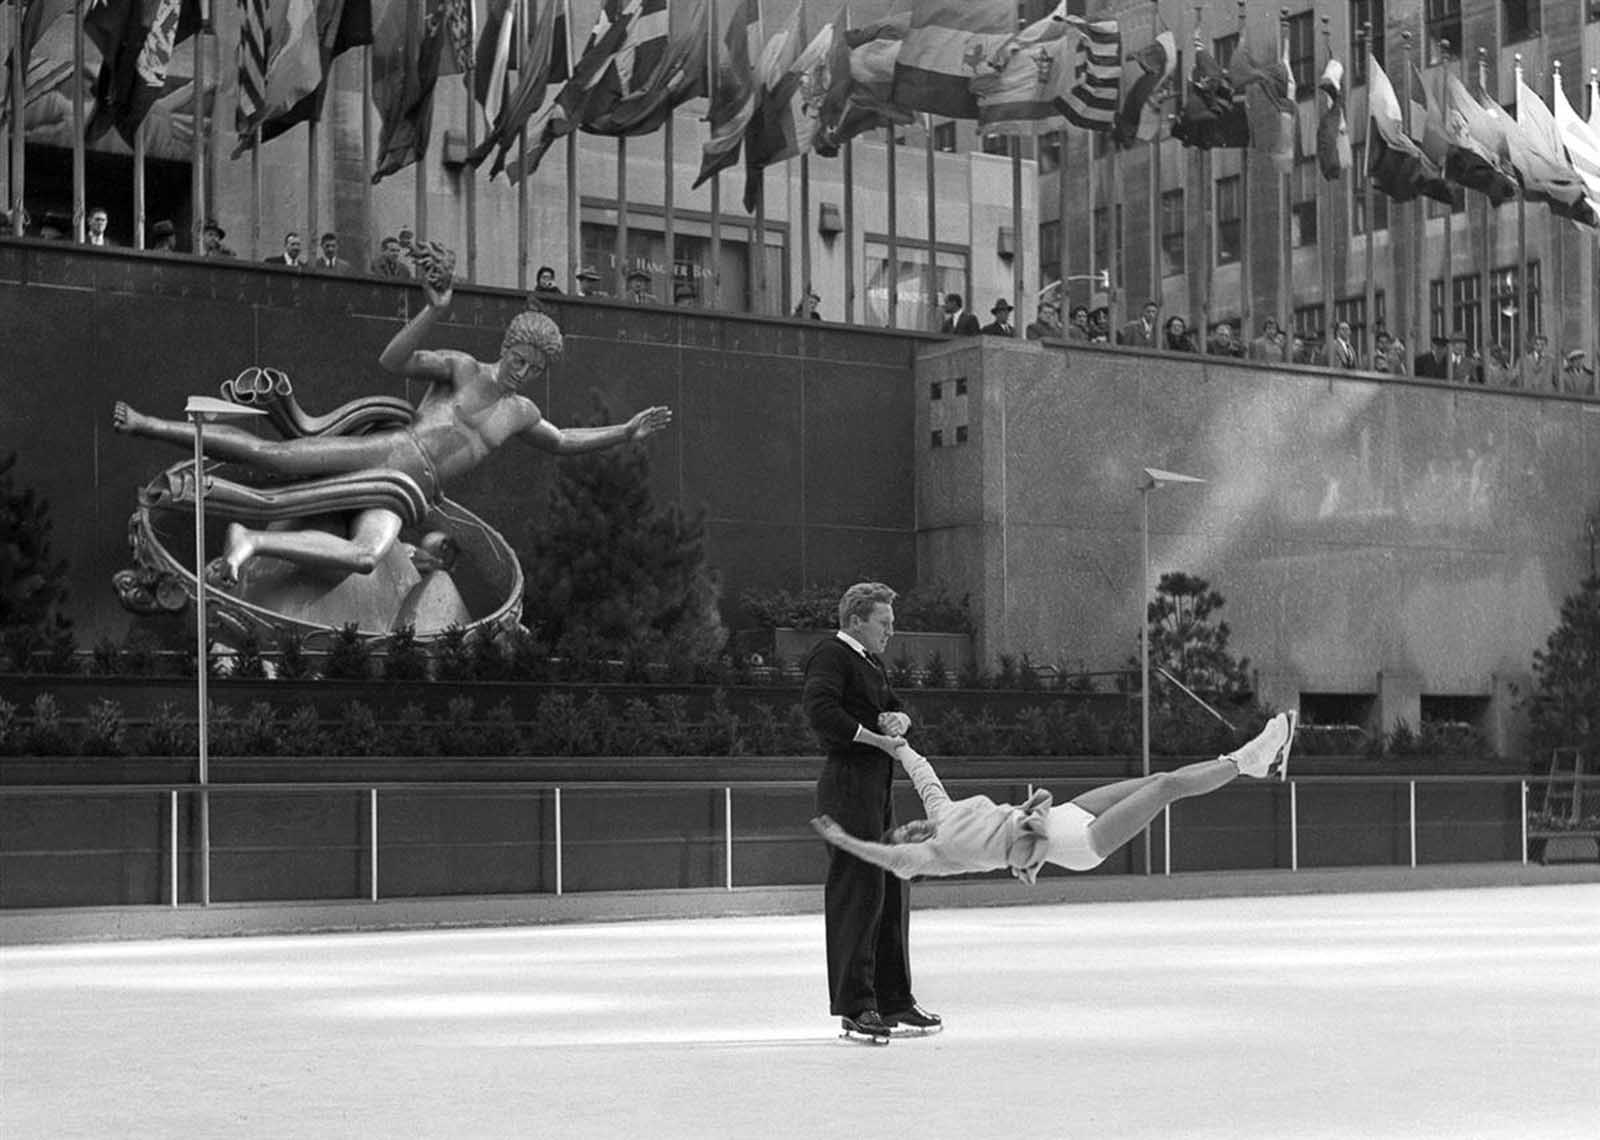 Professional skaters execute turn in mid-air, Rockefeller Center.